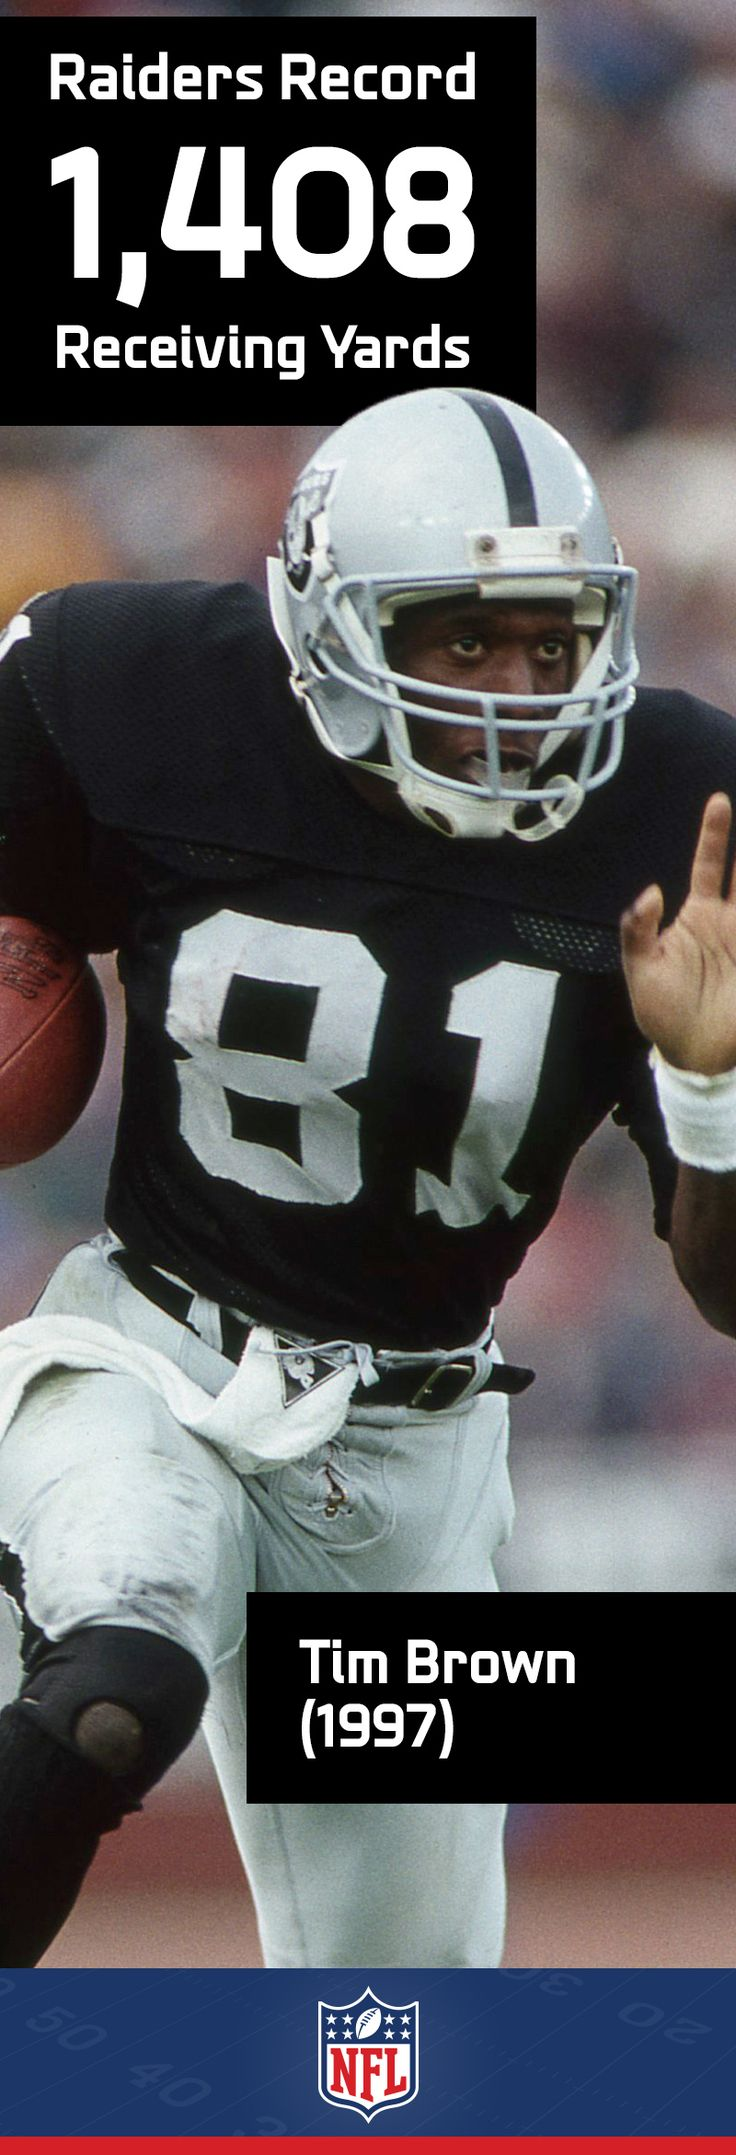 Tim Brown spent 16 years with the Raiders earning him the nickname Mr. Raider. During that span he was selected to 9 Pro-Bowls.